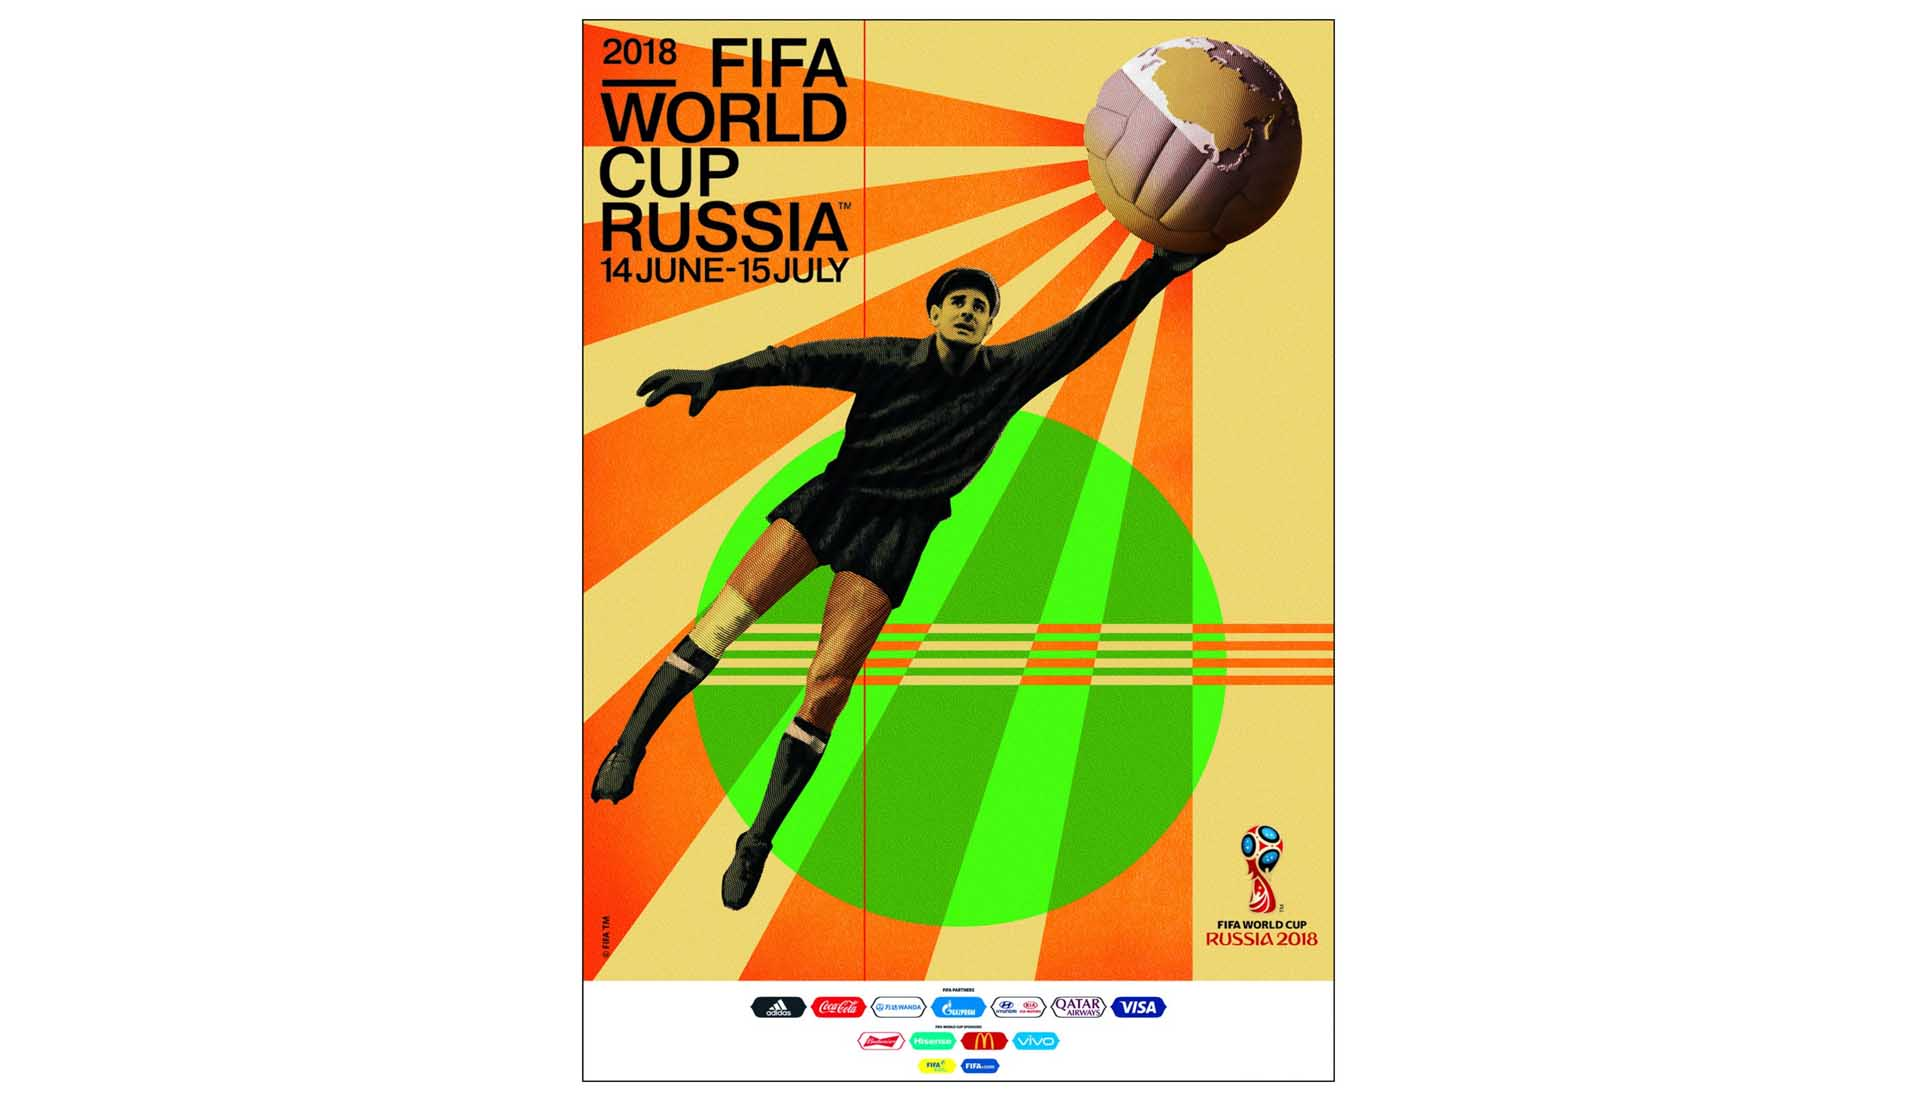 947750044 The promotion of both World Cups down to logo, graphics and mascots is  extremly similar.